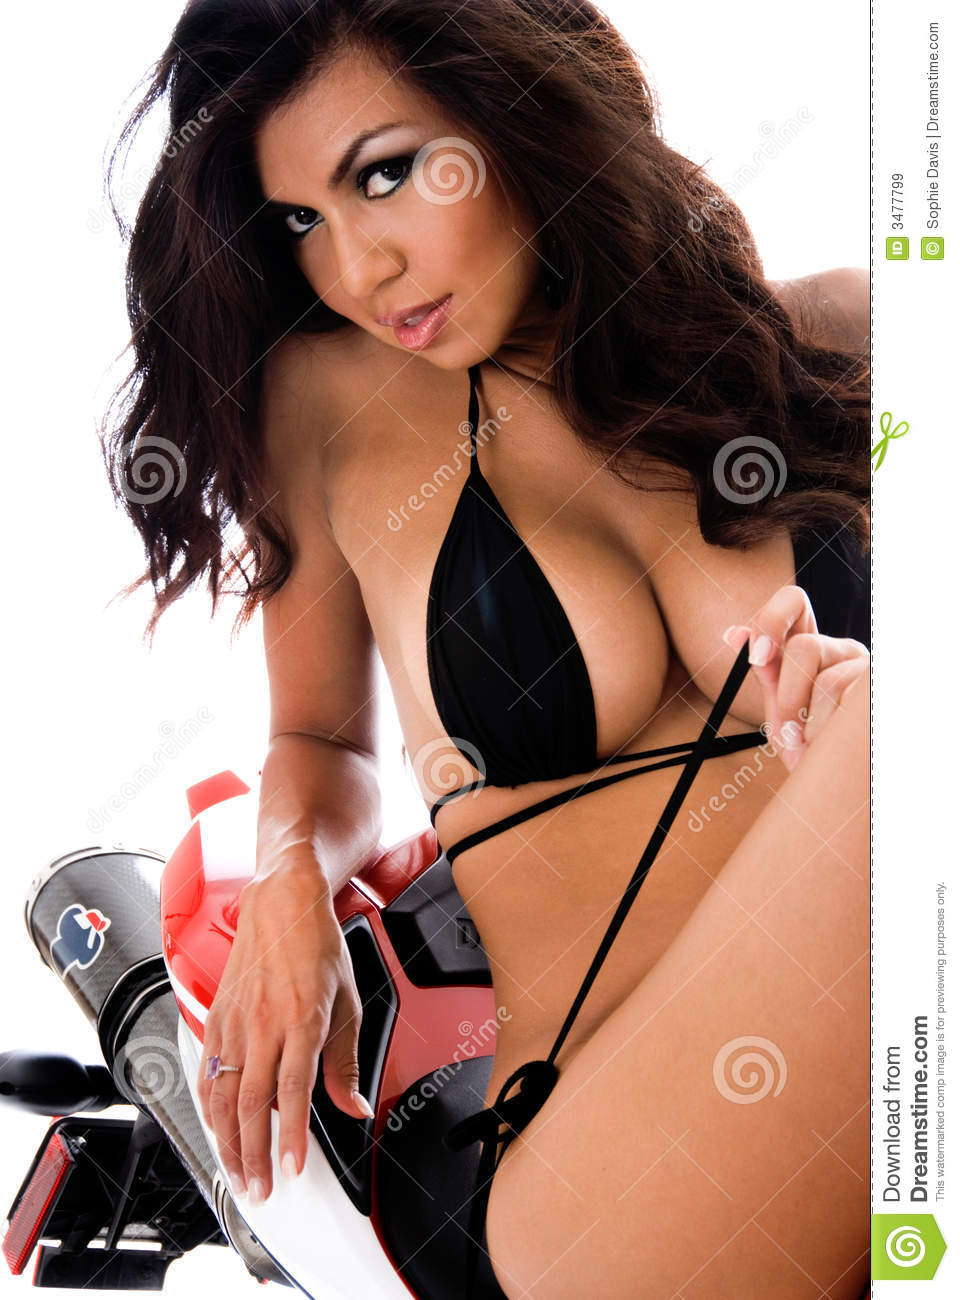 Sexy Hispanic Biker Royalty Free Stock Images Image 3477799